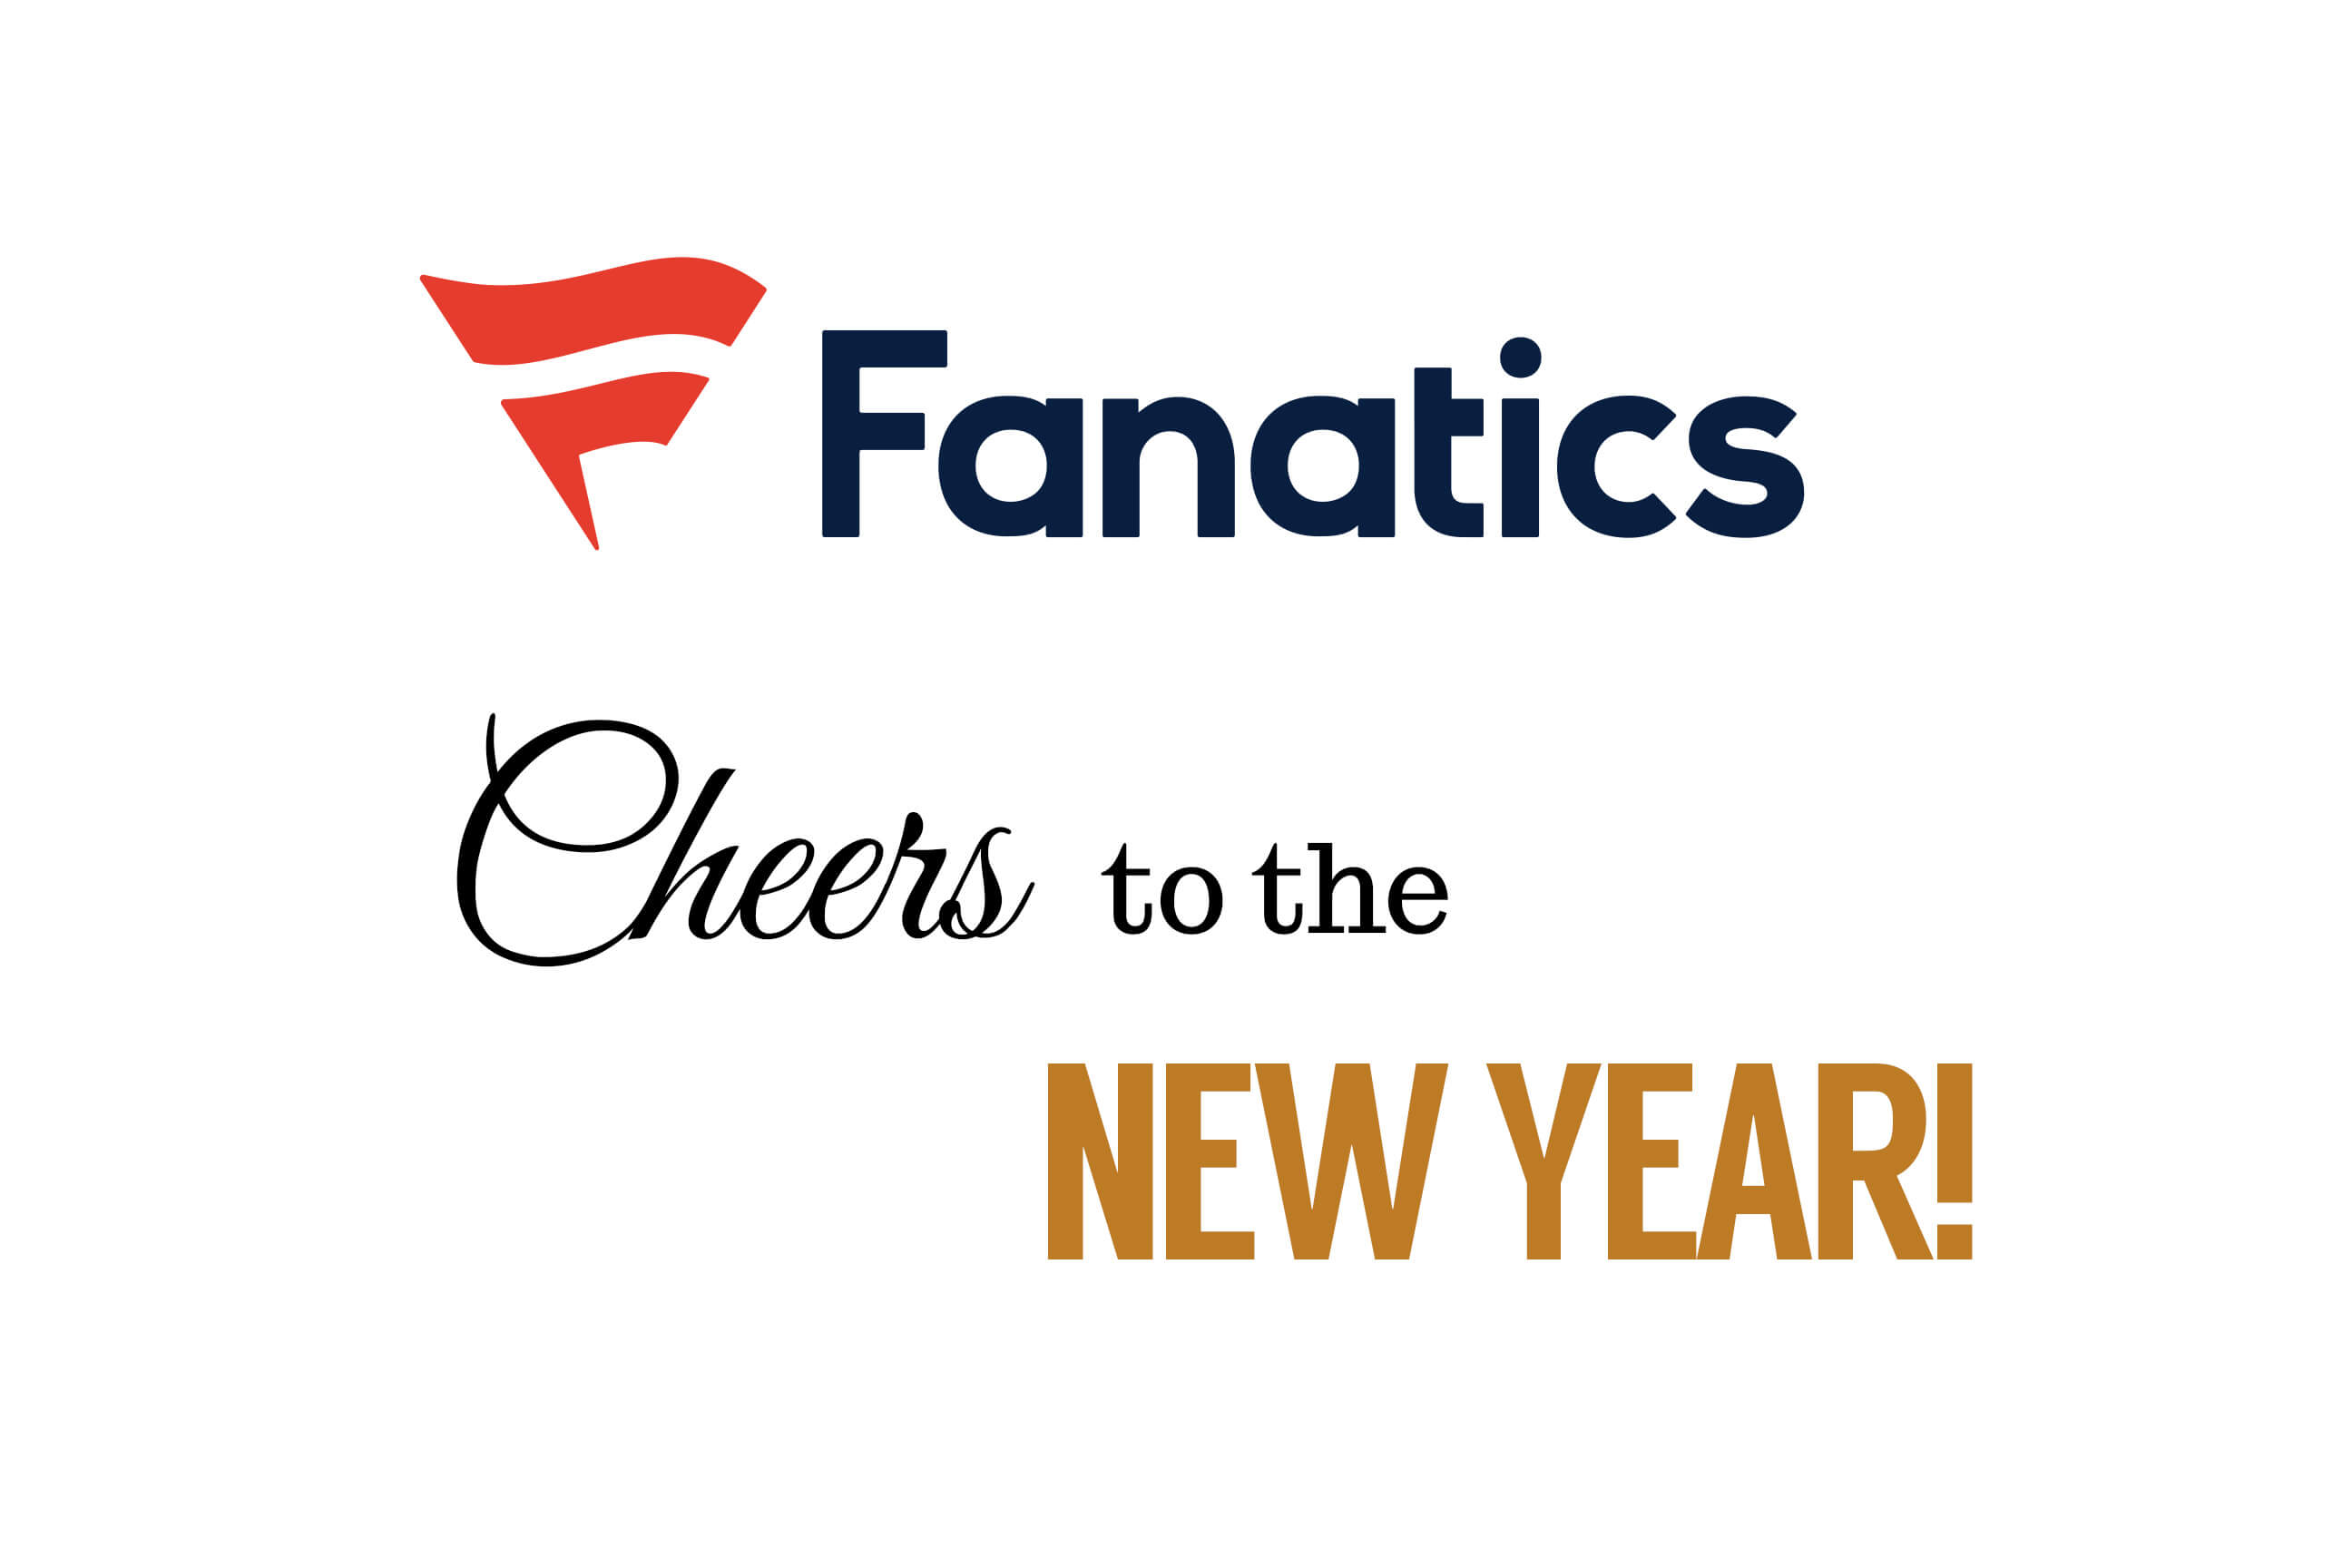 Fanatics Cheers to the New Year 2018 | Queen\'s Harbour Yacht ...